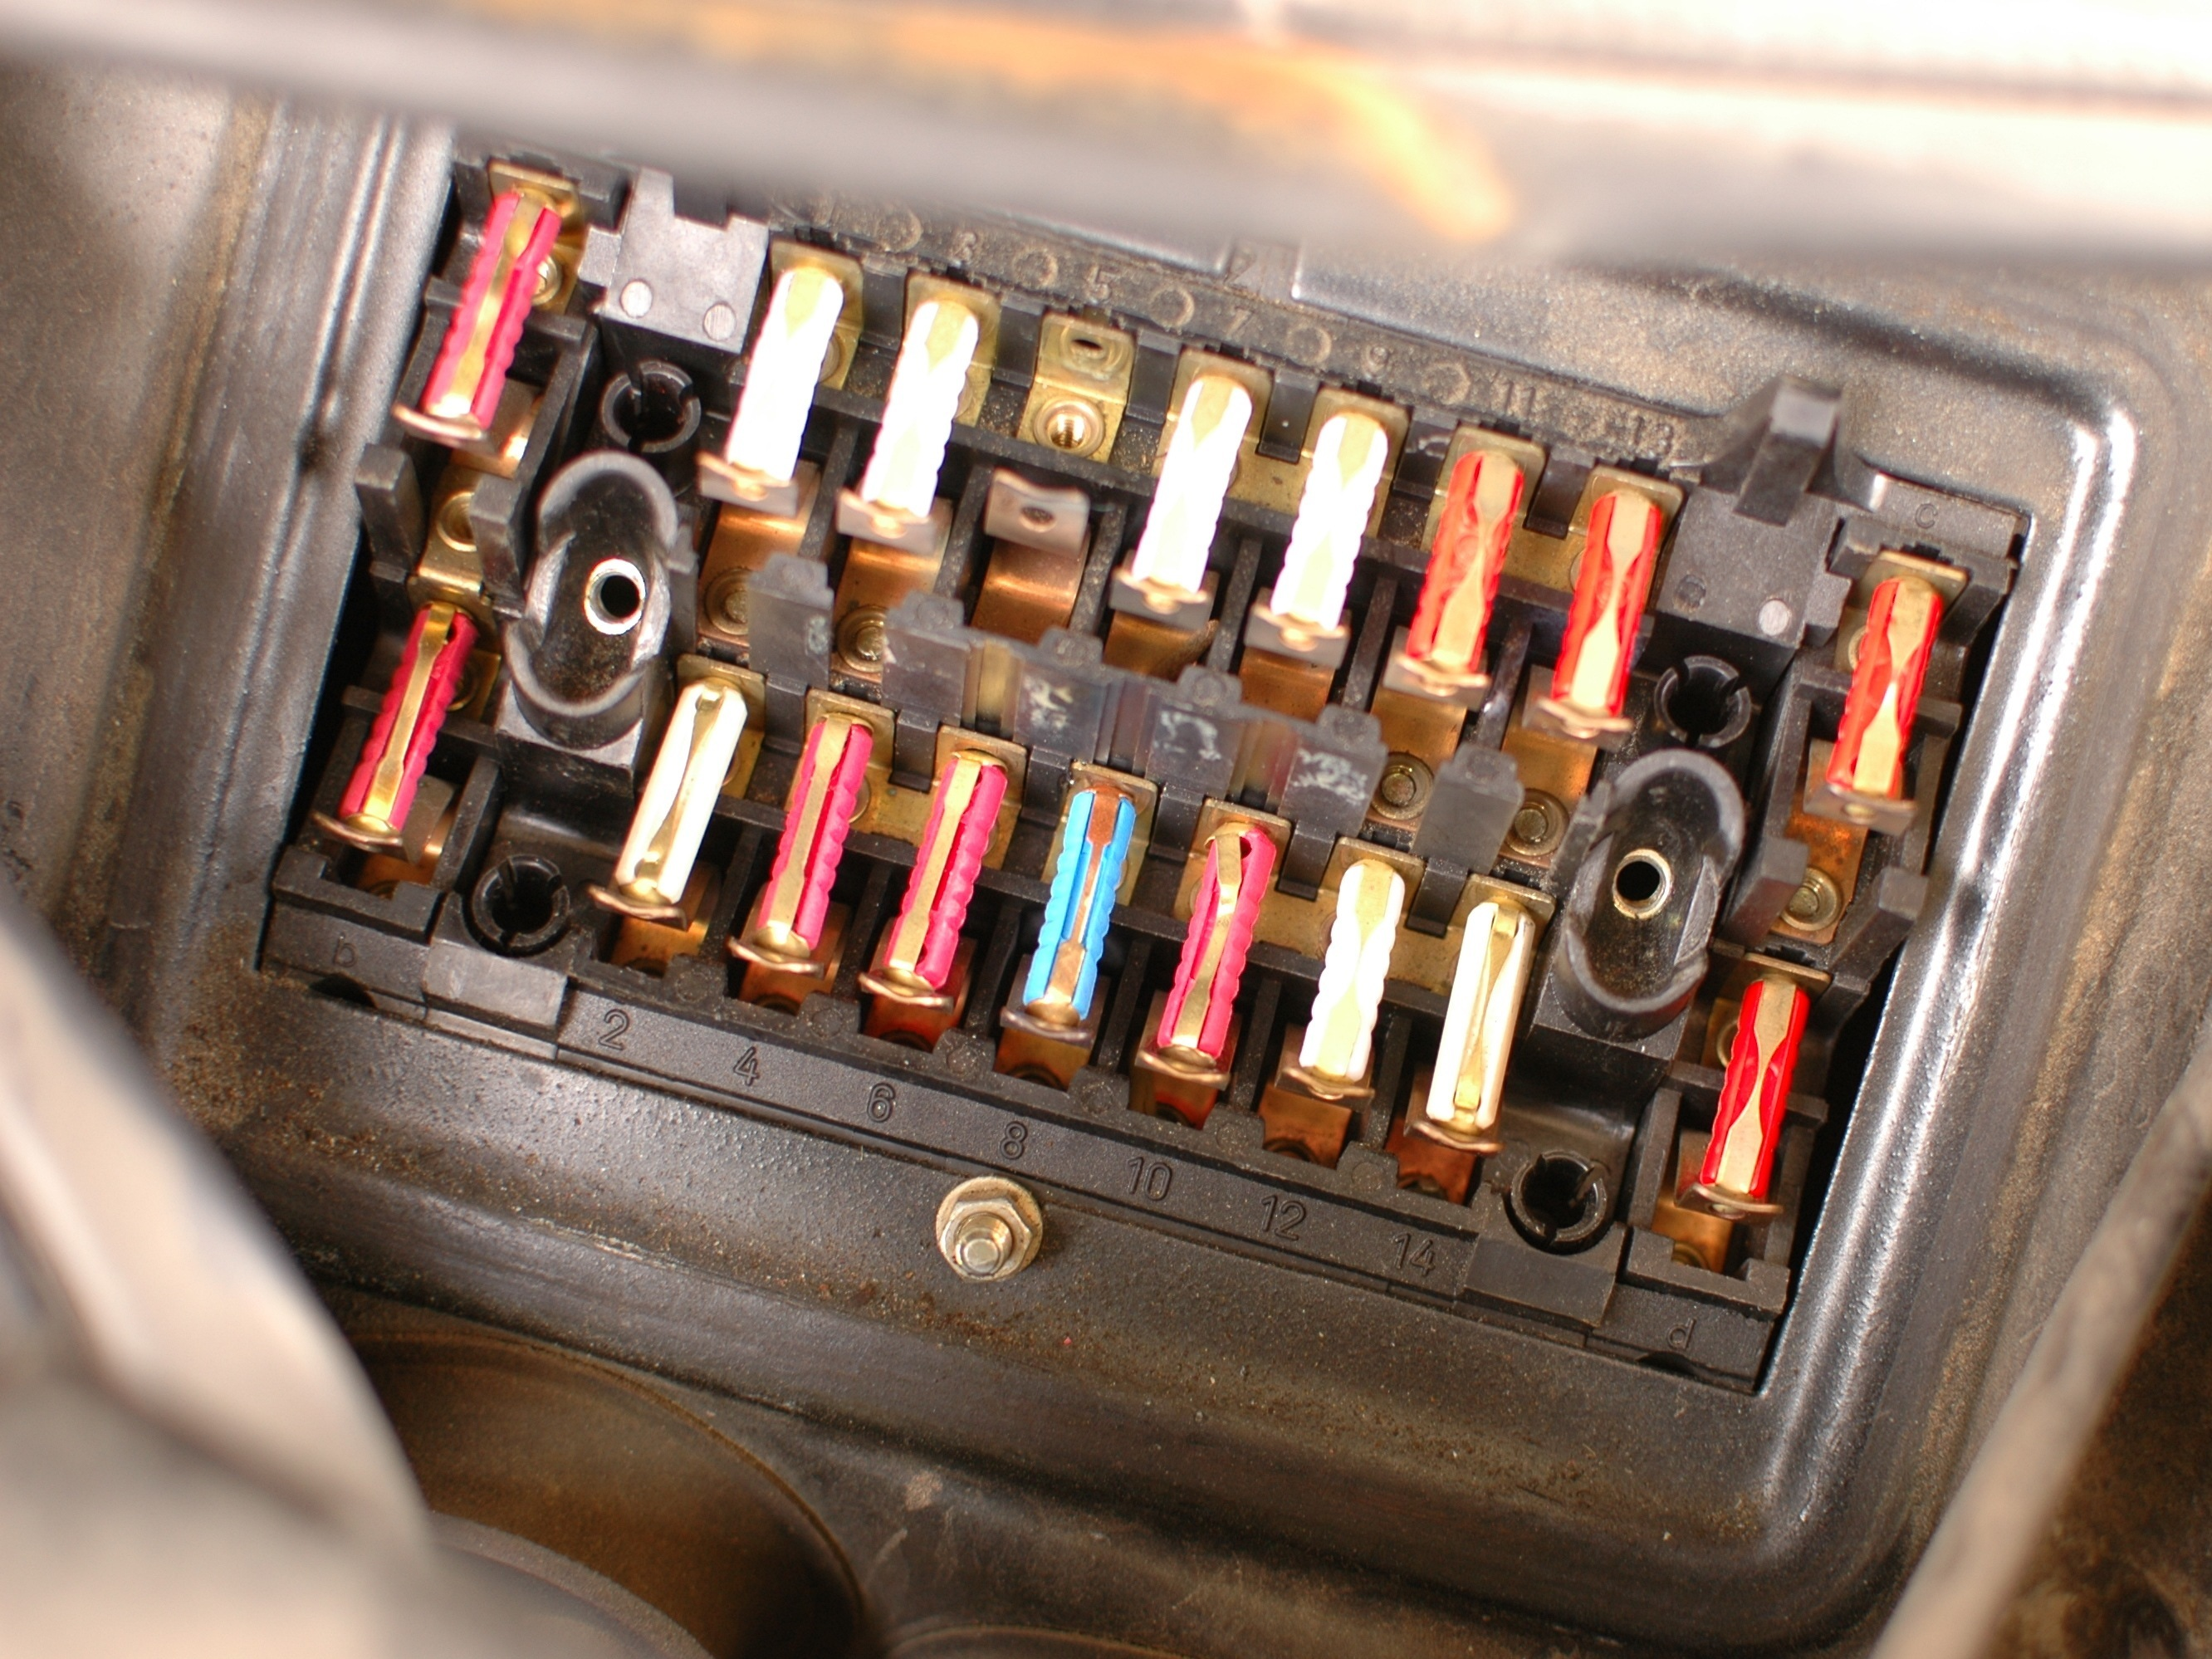 AfYAfmoCaMTVU2ap how to check mercedes w123 fuses ifixit 1984 mercedes 380sl fuse box location at webbmarketing.co